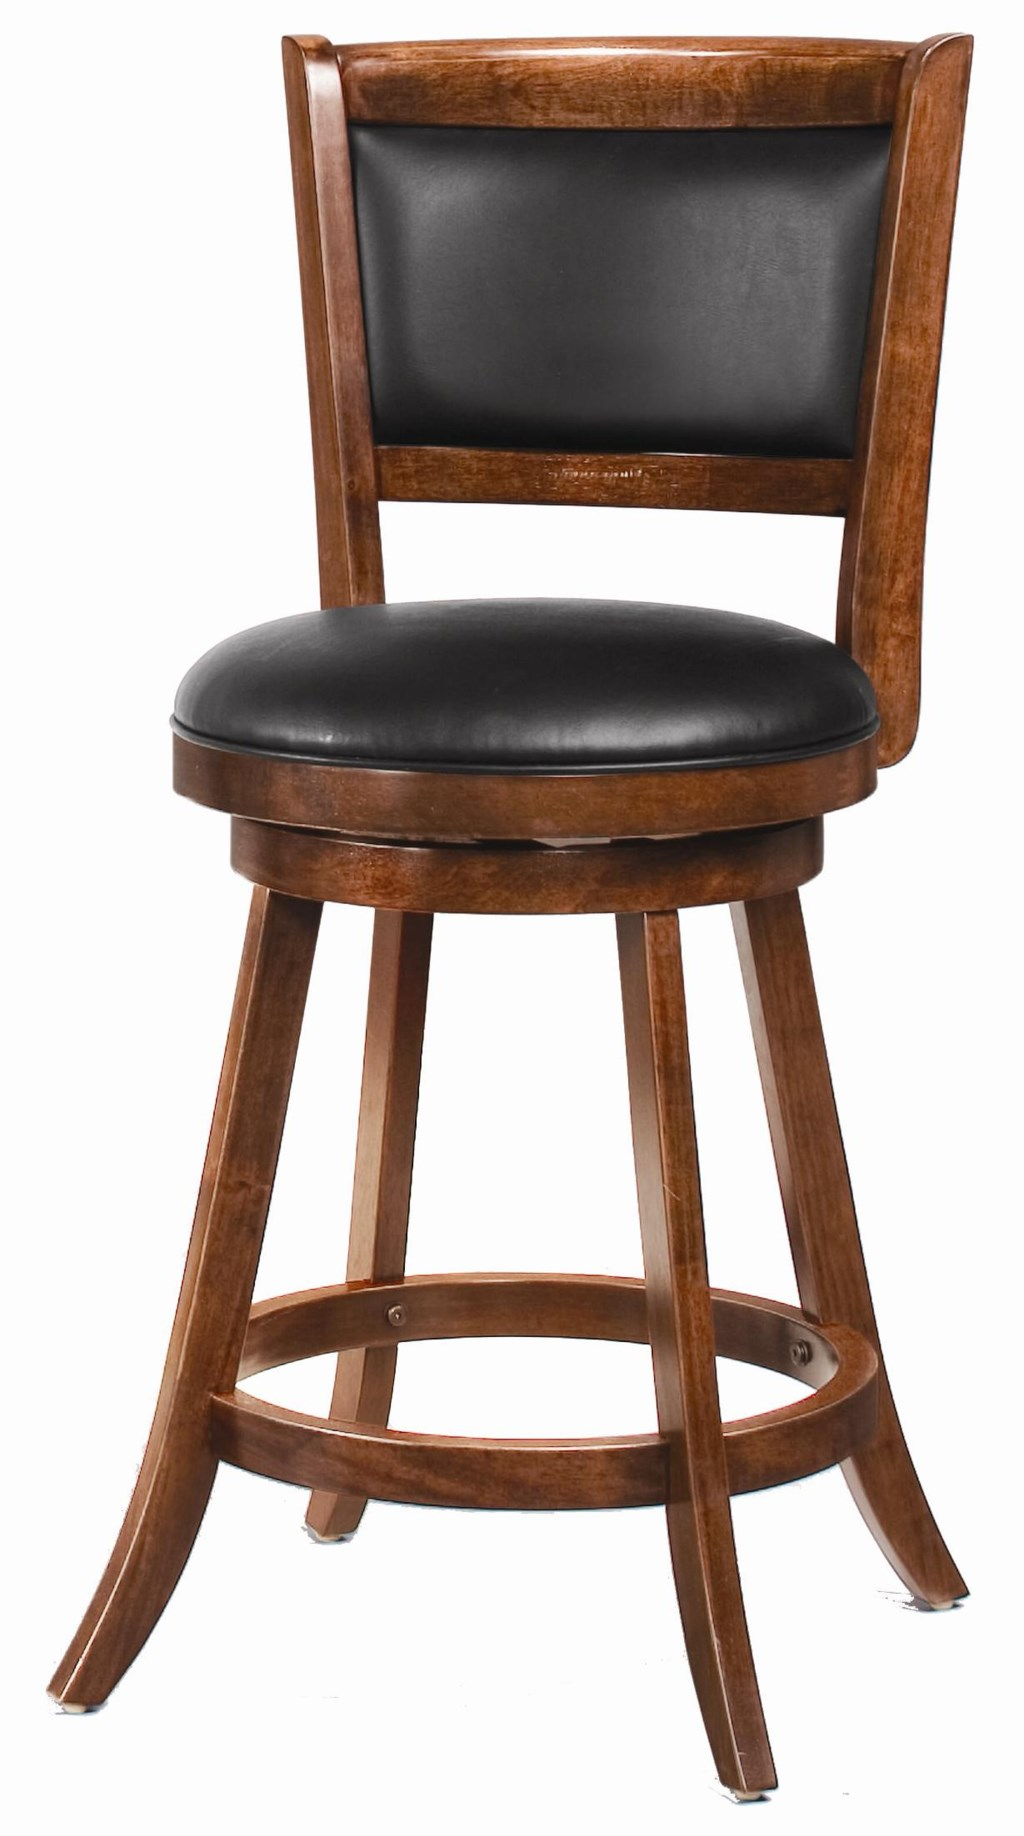 Coaster Dining Chairs And Bar Stools 24 Swivel Bar Stool With